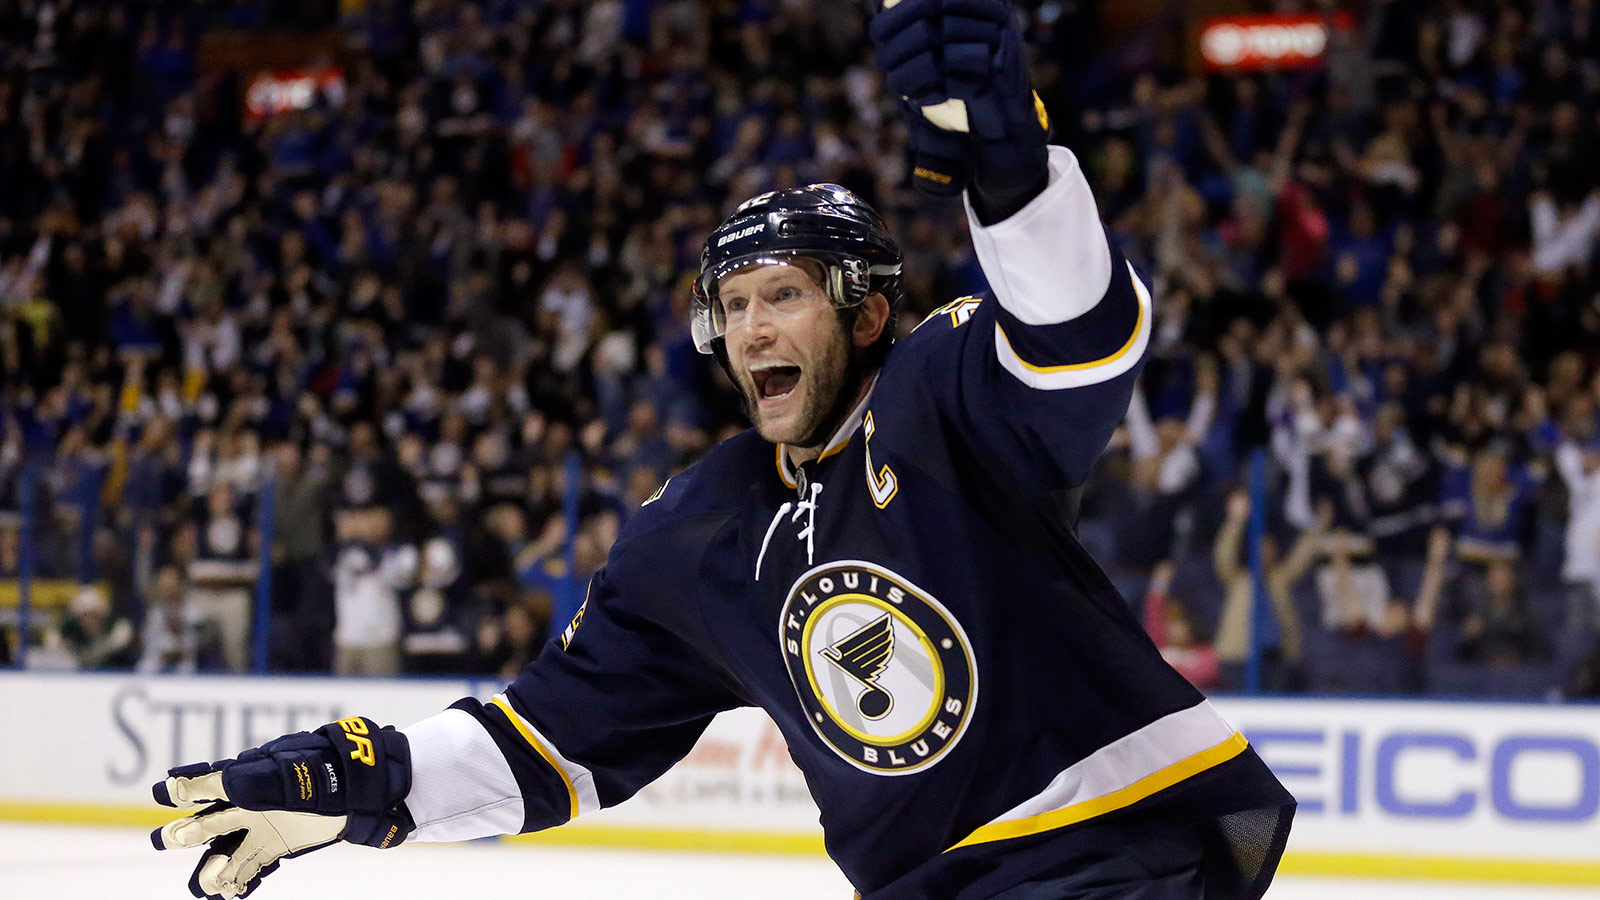 Blues face a Sabres team not used to their imposing size